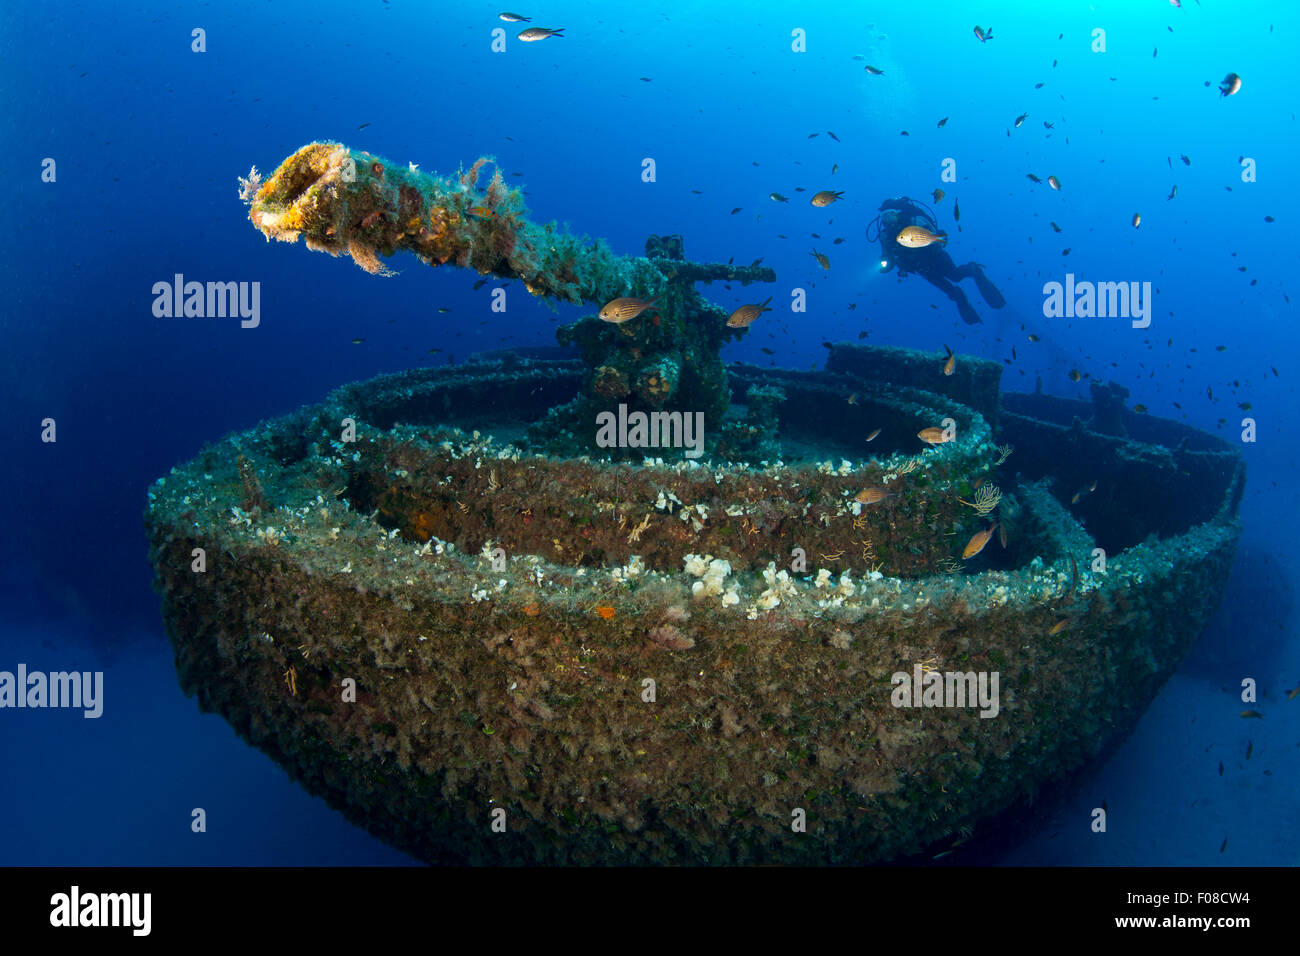 Gun on Bow of LST 349 Wreck, Ponza, Italy - Stock Image